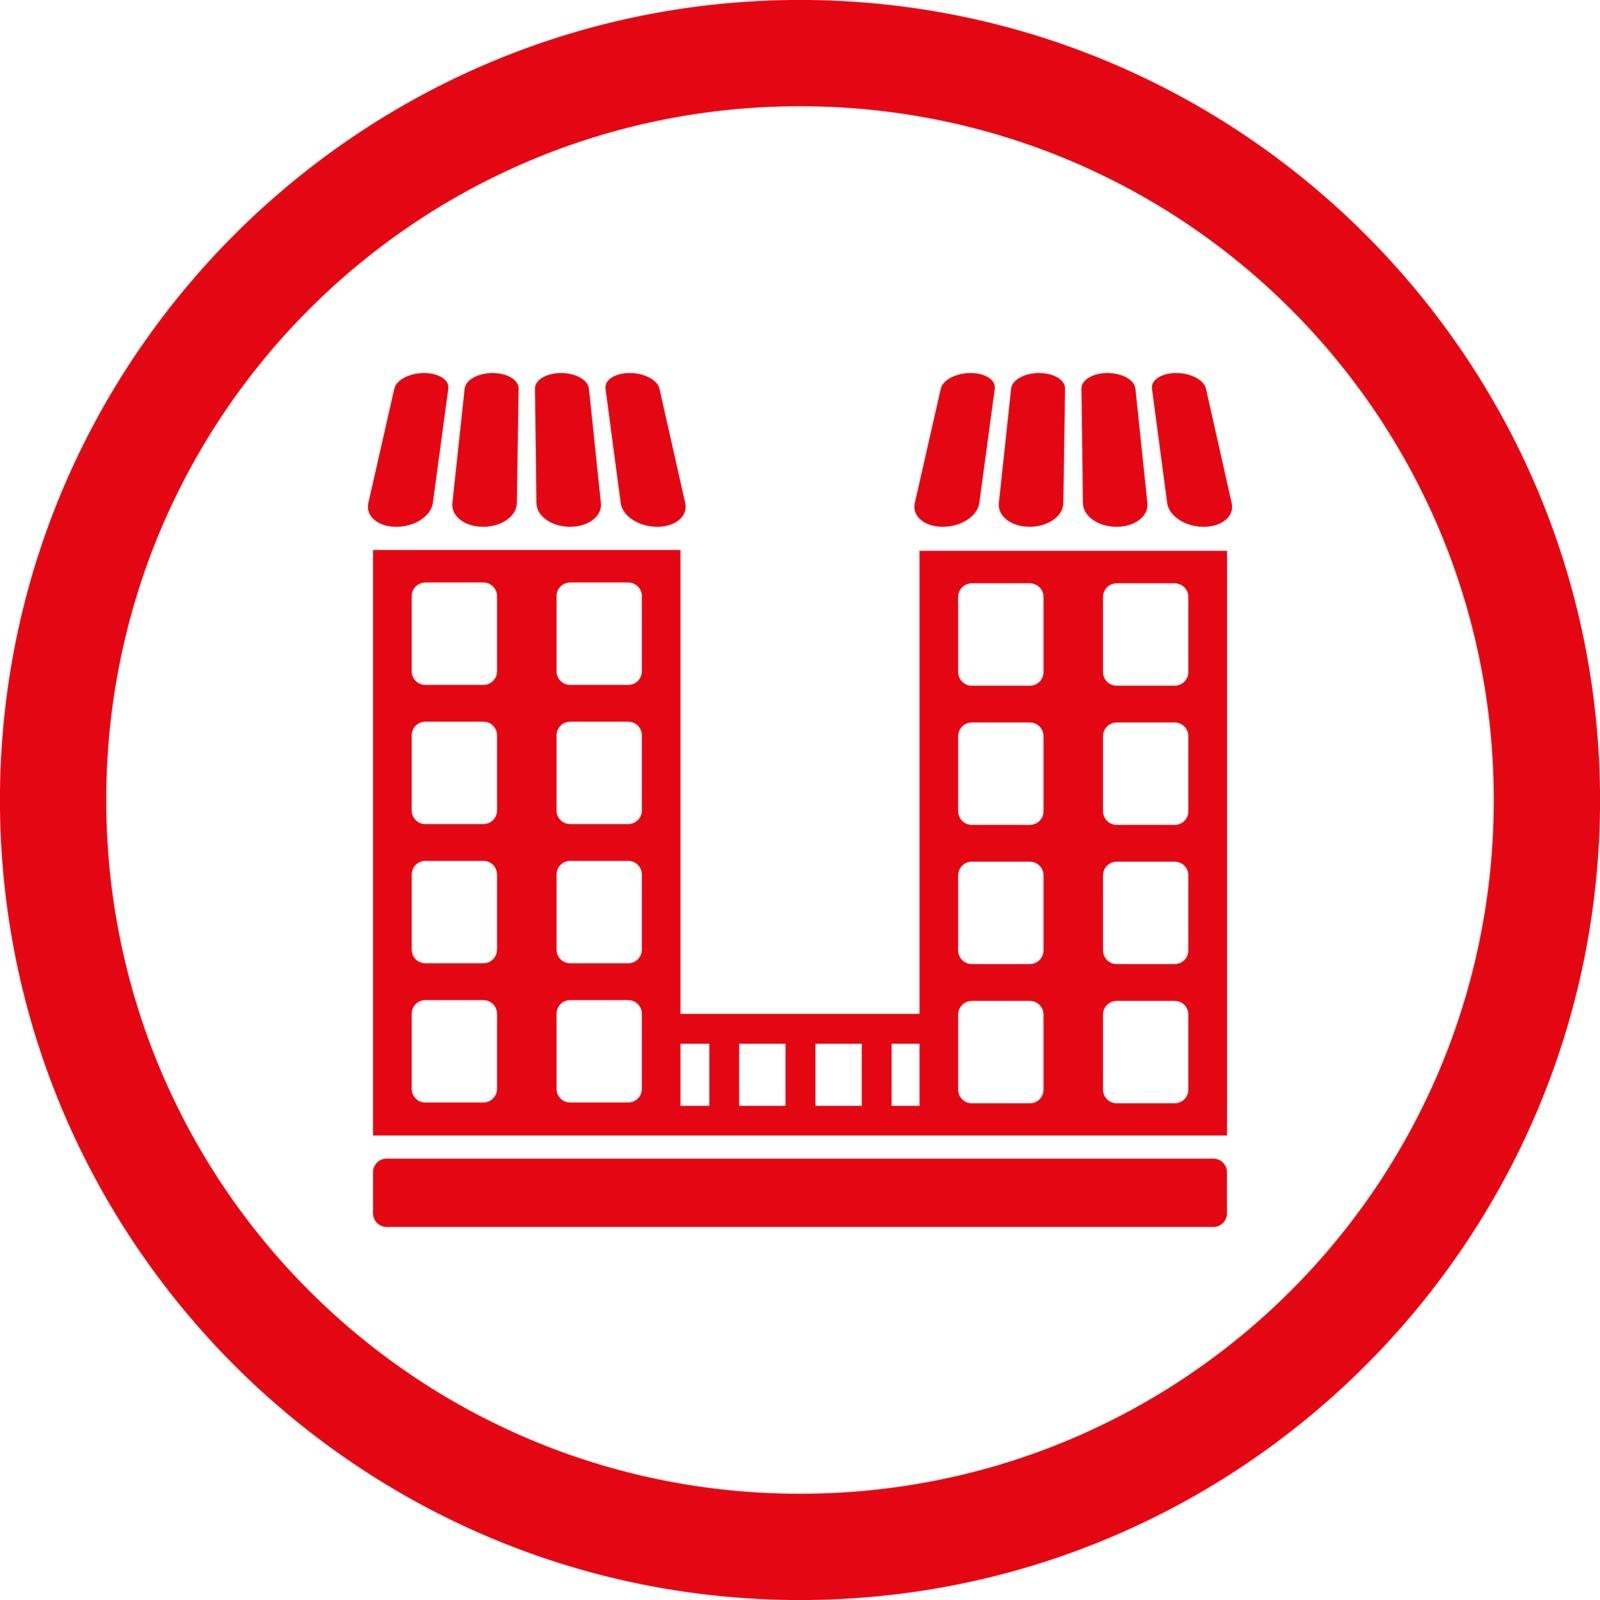 Company vector icon. This flat rounded symbol uses red color and isolated on a white background.